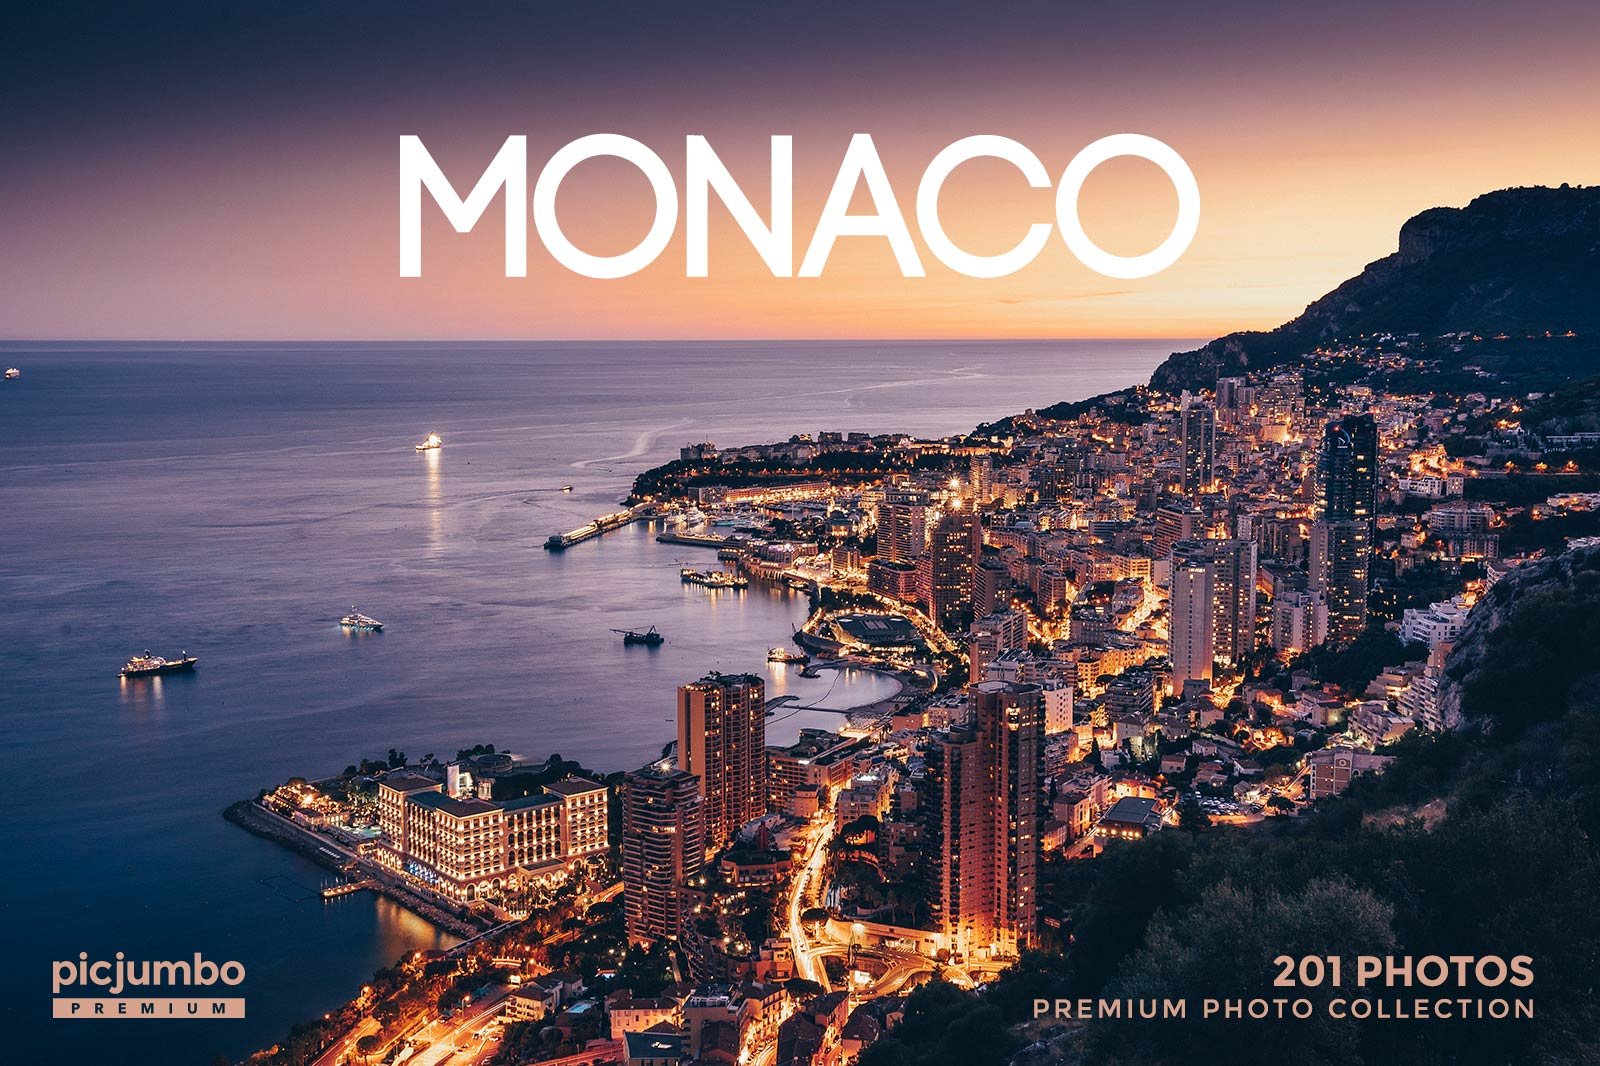 Monaco stock photo collection